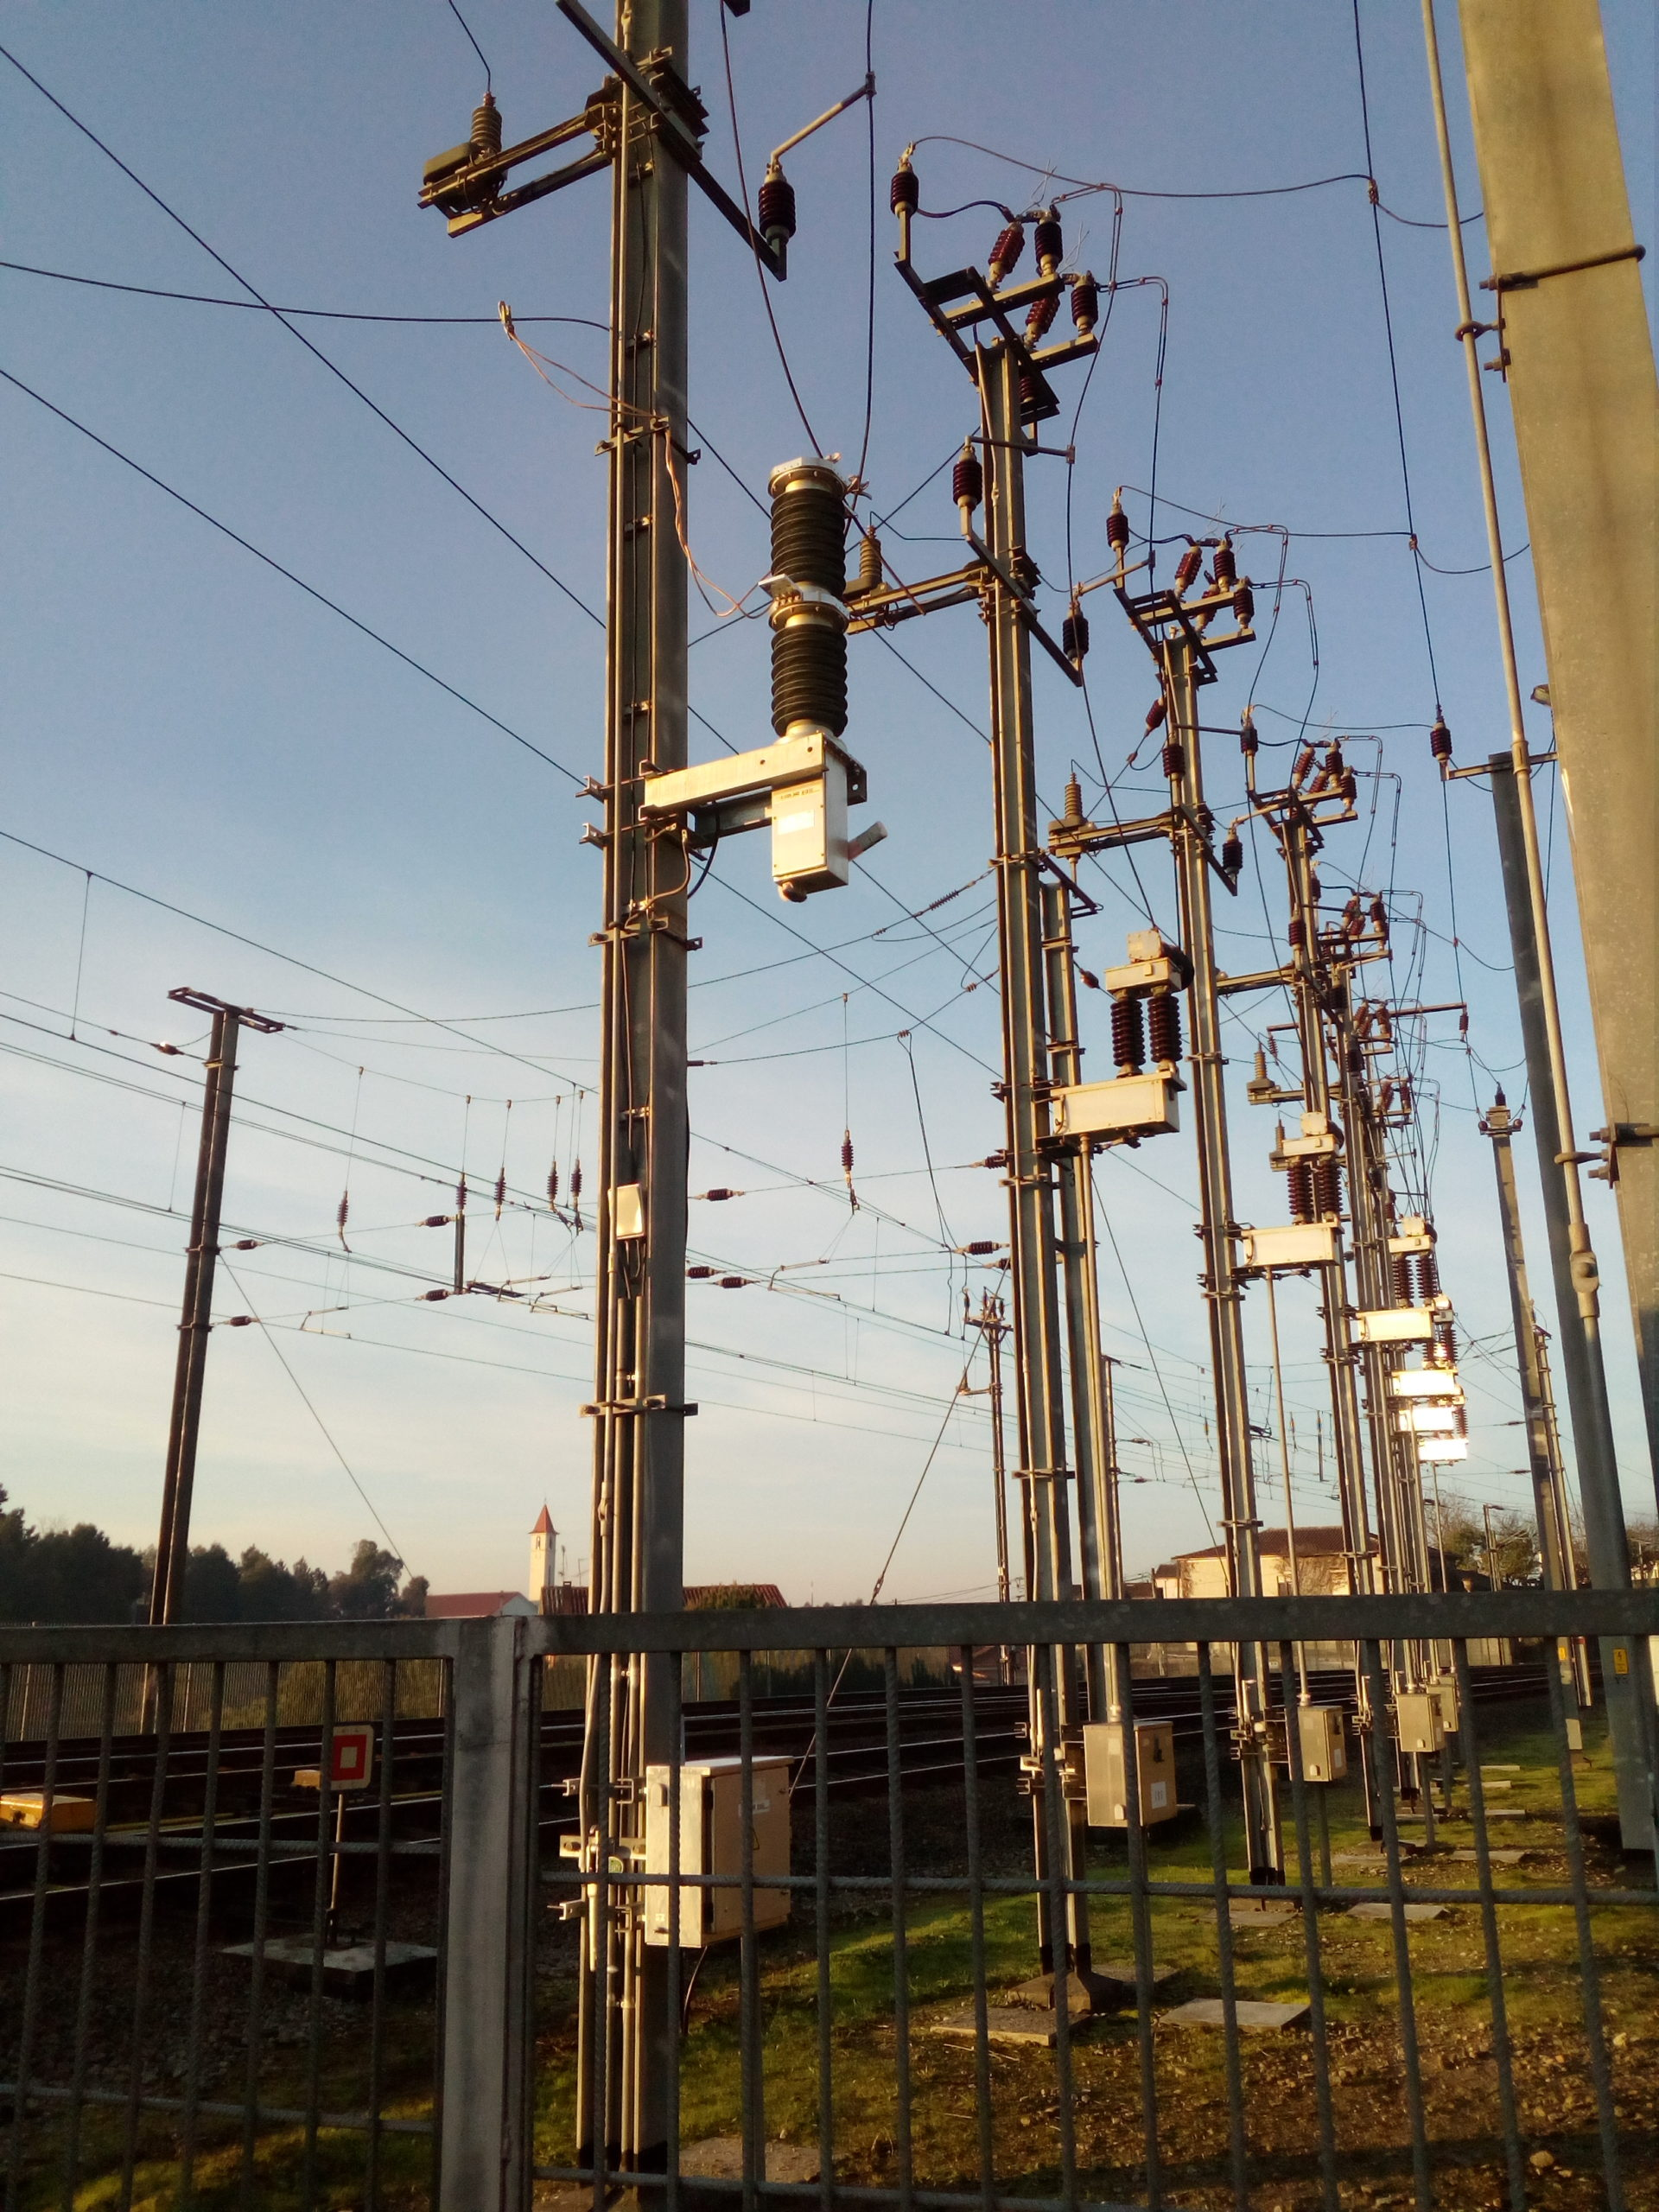 Single VSV at catenary level in Portugal on IP line